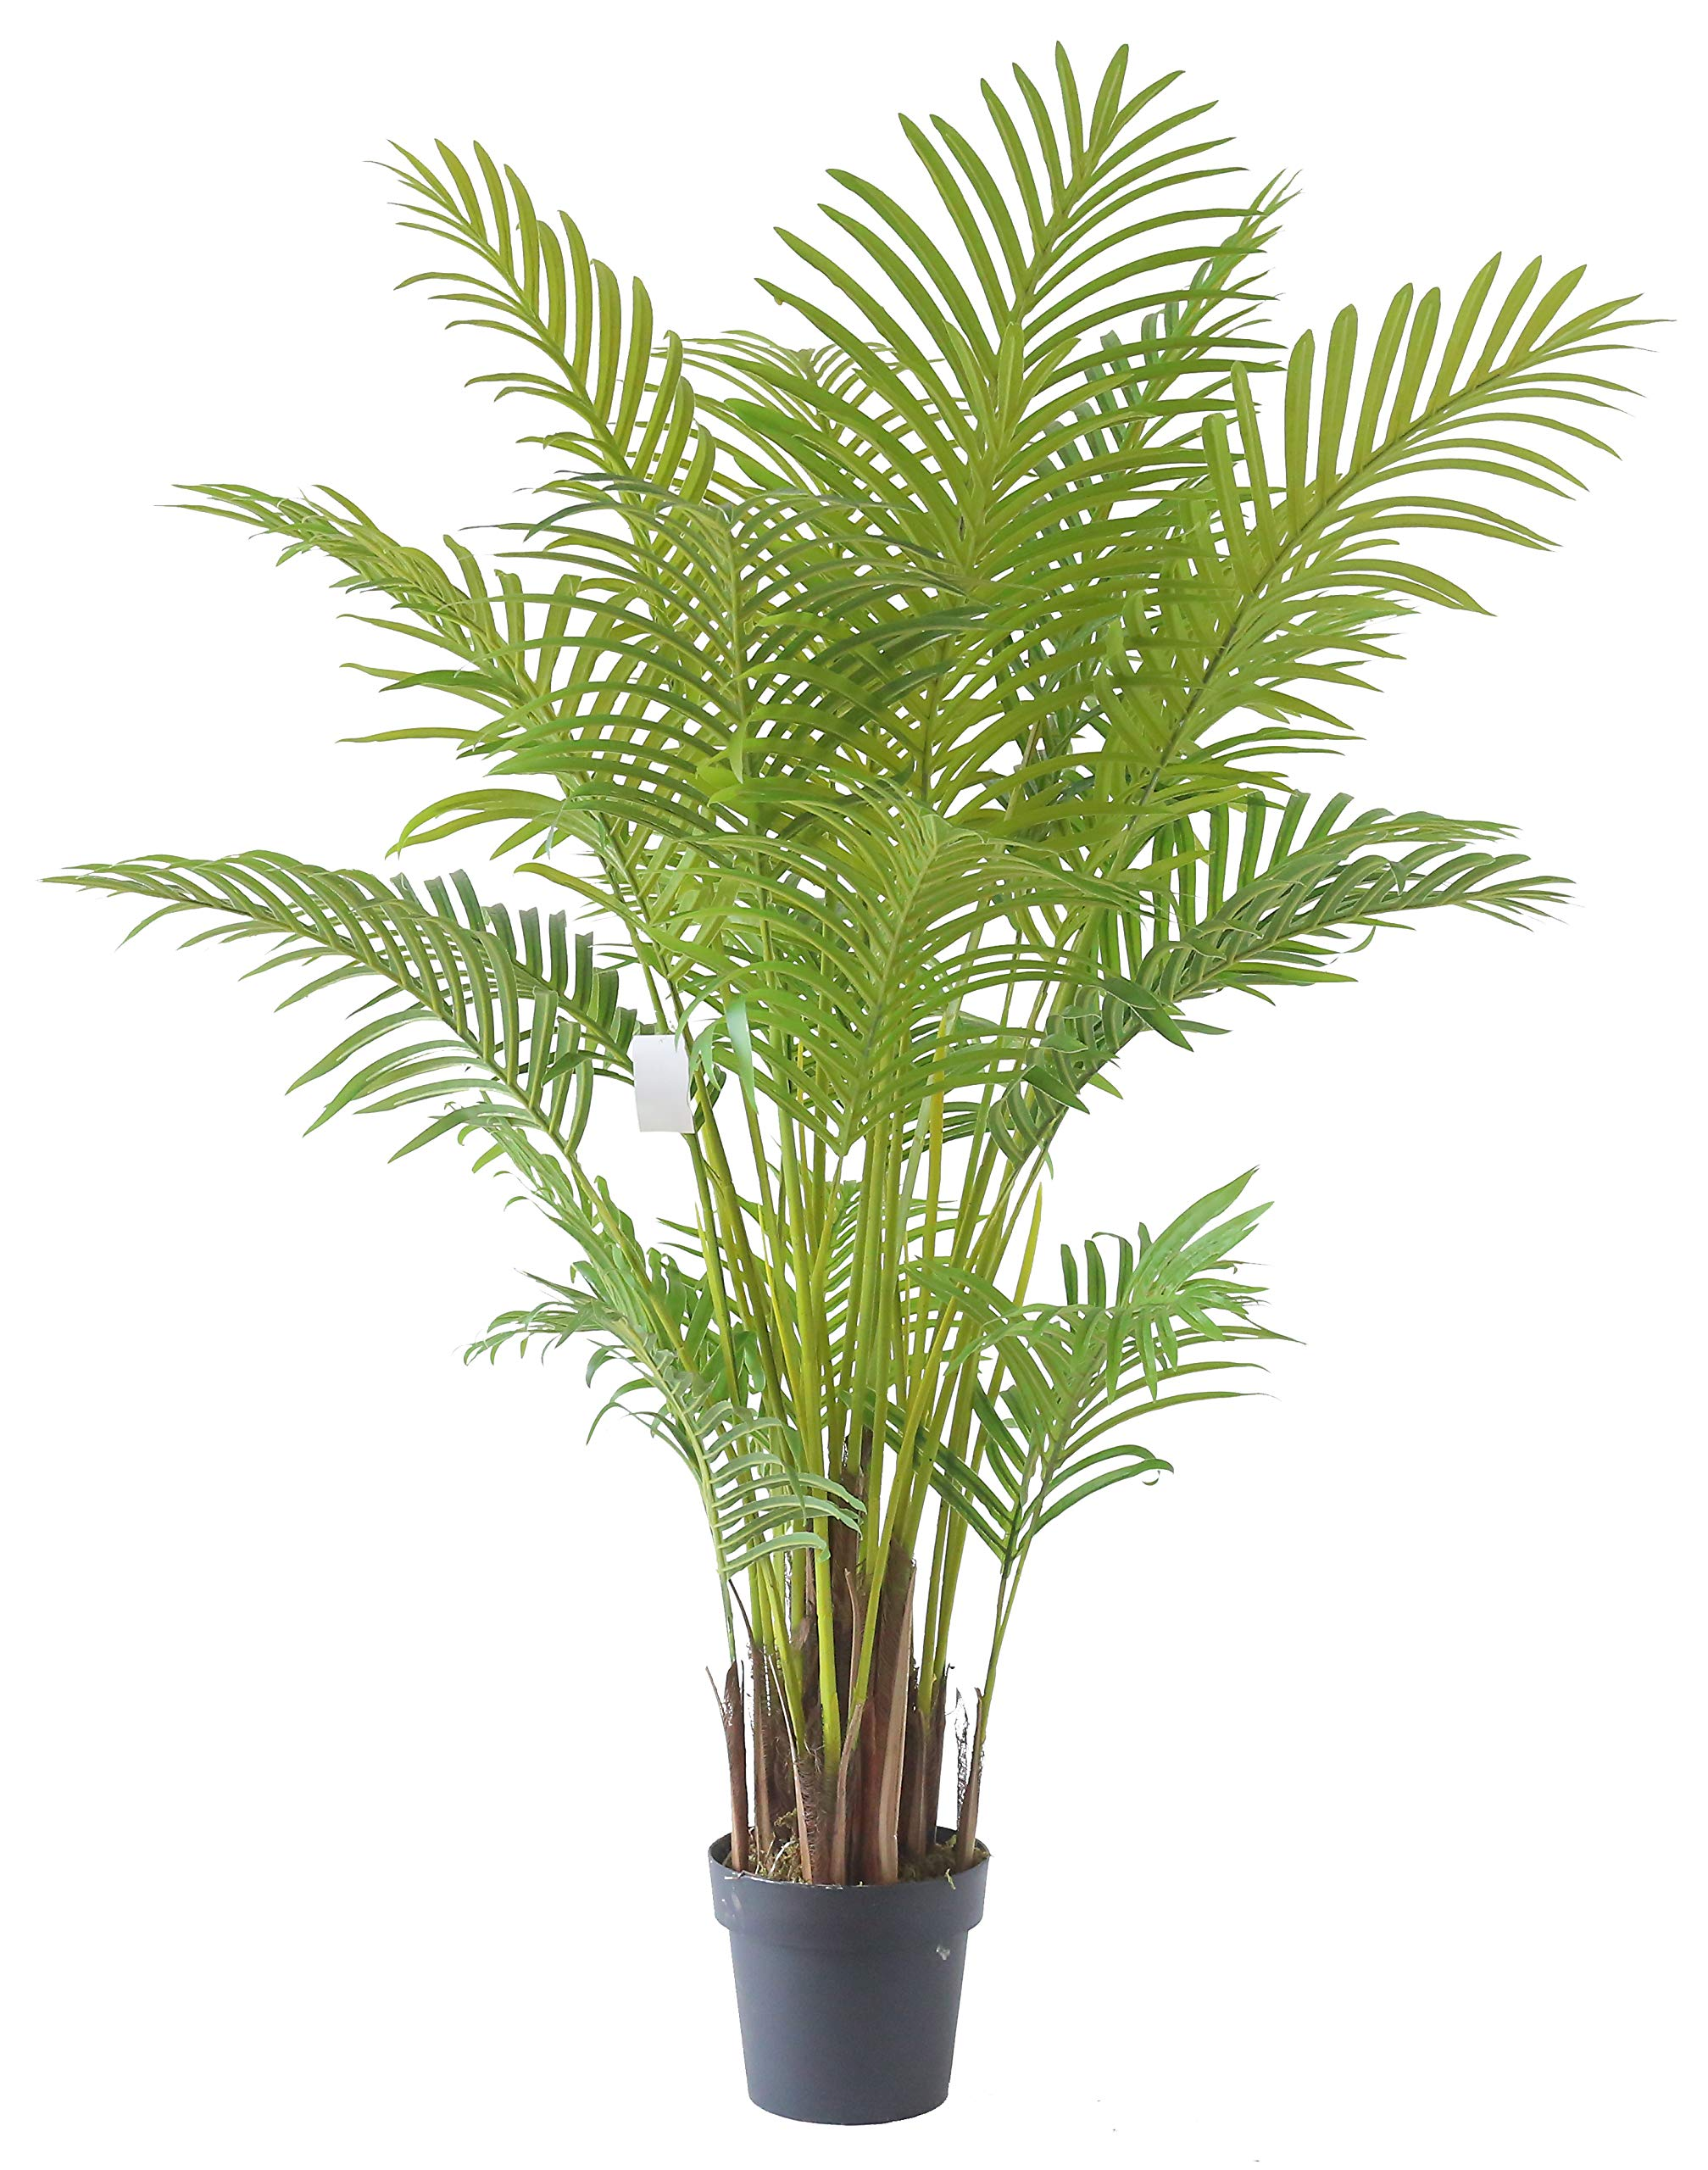 AMERIQUE Gorgeous and Detailed 4.7' Tropical Palm Tree Artificial Silk Plant with UV Protection, with Nursery Plastic Pot, Super Quality, Feet, Green by AMERIQUE